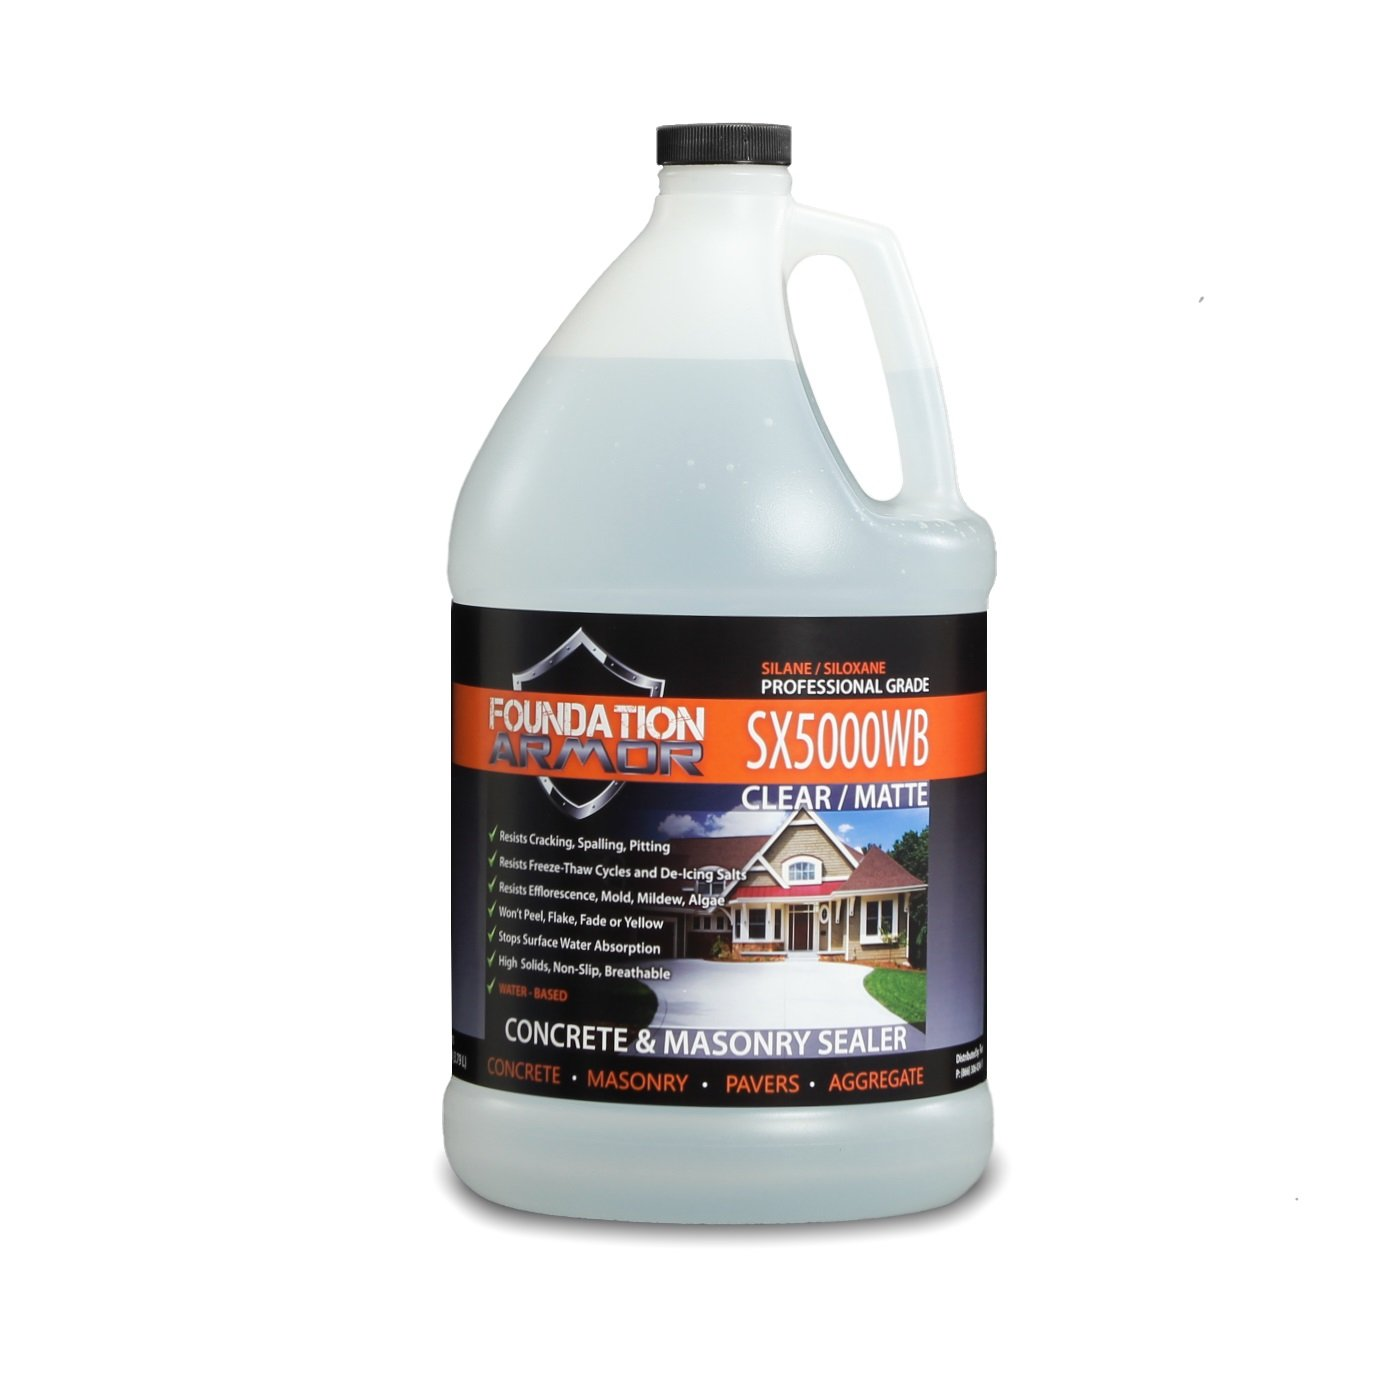 Armor SX5000 WB DOT Approved Deep Penetrating Water Based Silane Siloxane Concrete Sealer, Brick Sealer, Paver Sealer, and Water Repellent Sealer Salt Guard